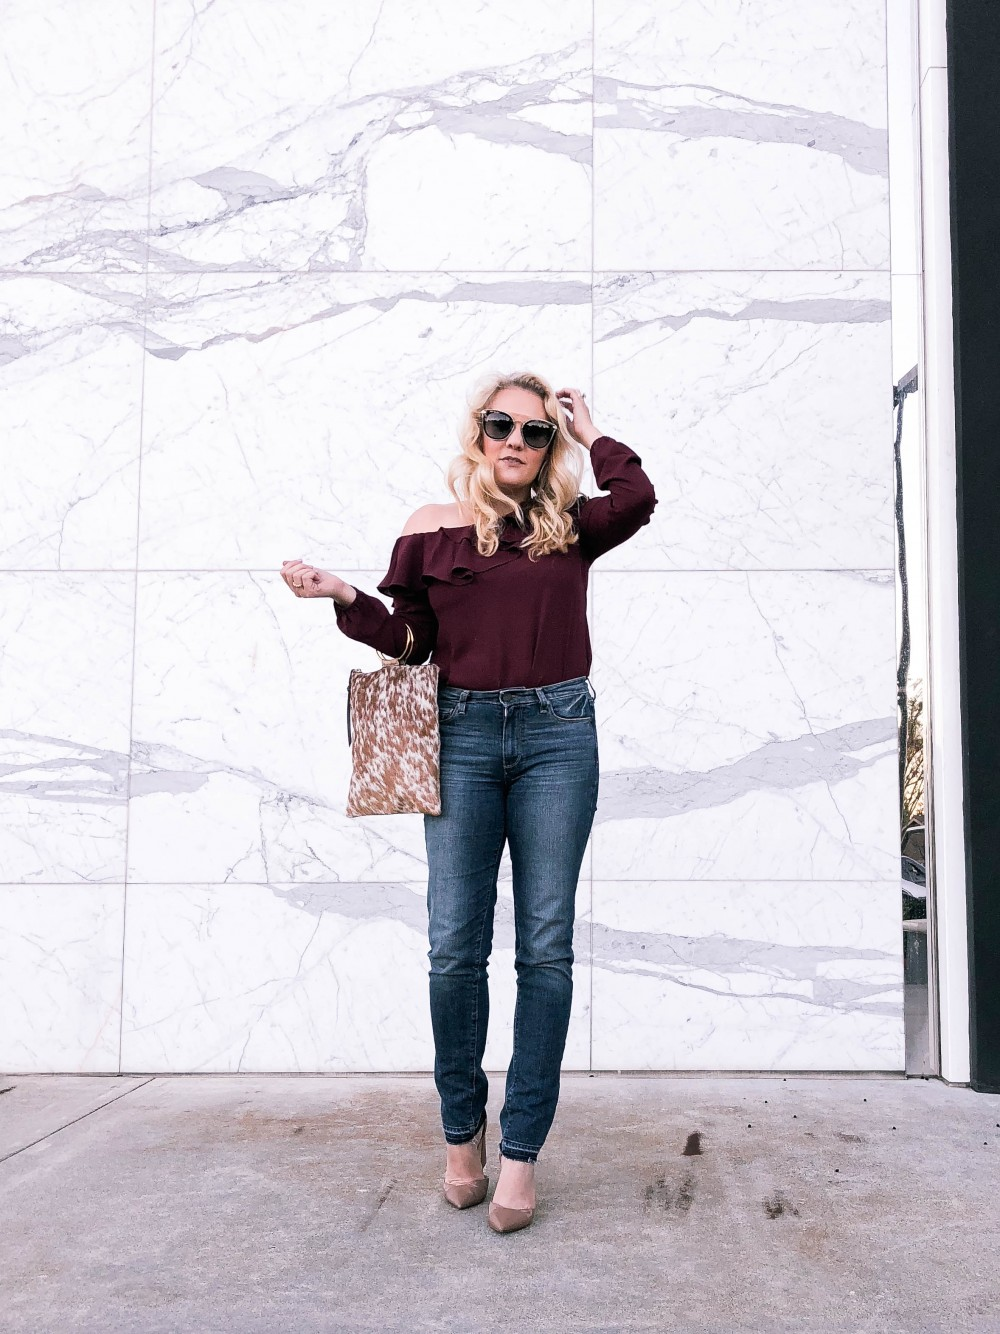 one shoulder ruffle top, Maette by Stella & Dot, Bay Area Fashion Blogger, Outfit Inspiration, Mom Style, DIFF eyewear, Paige Denim, High Waist Jeans, Nine West Chunky Heels